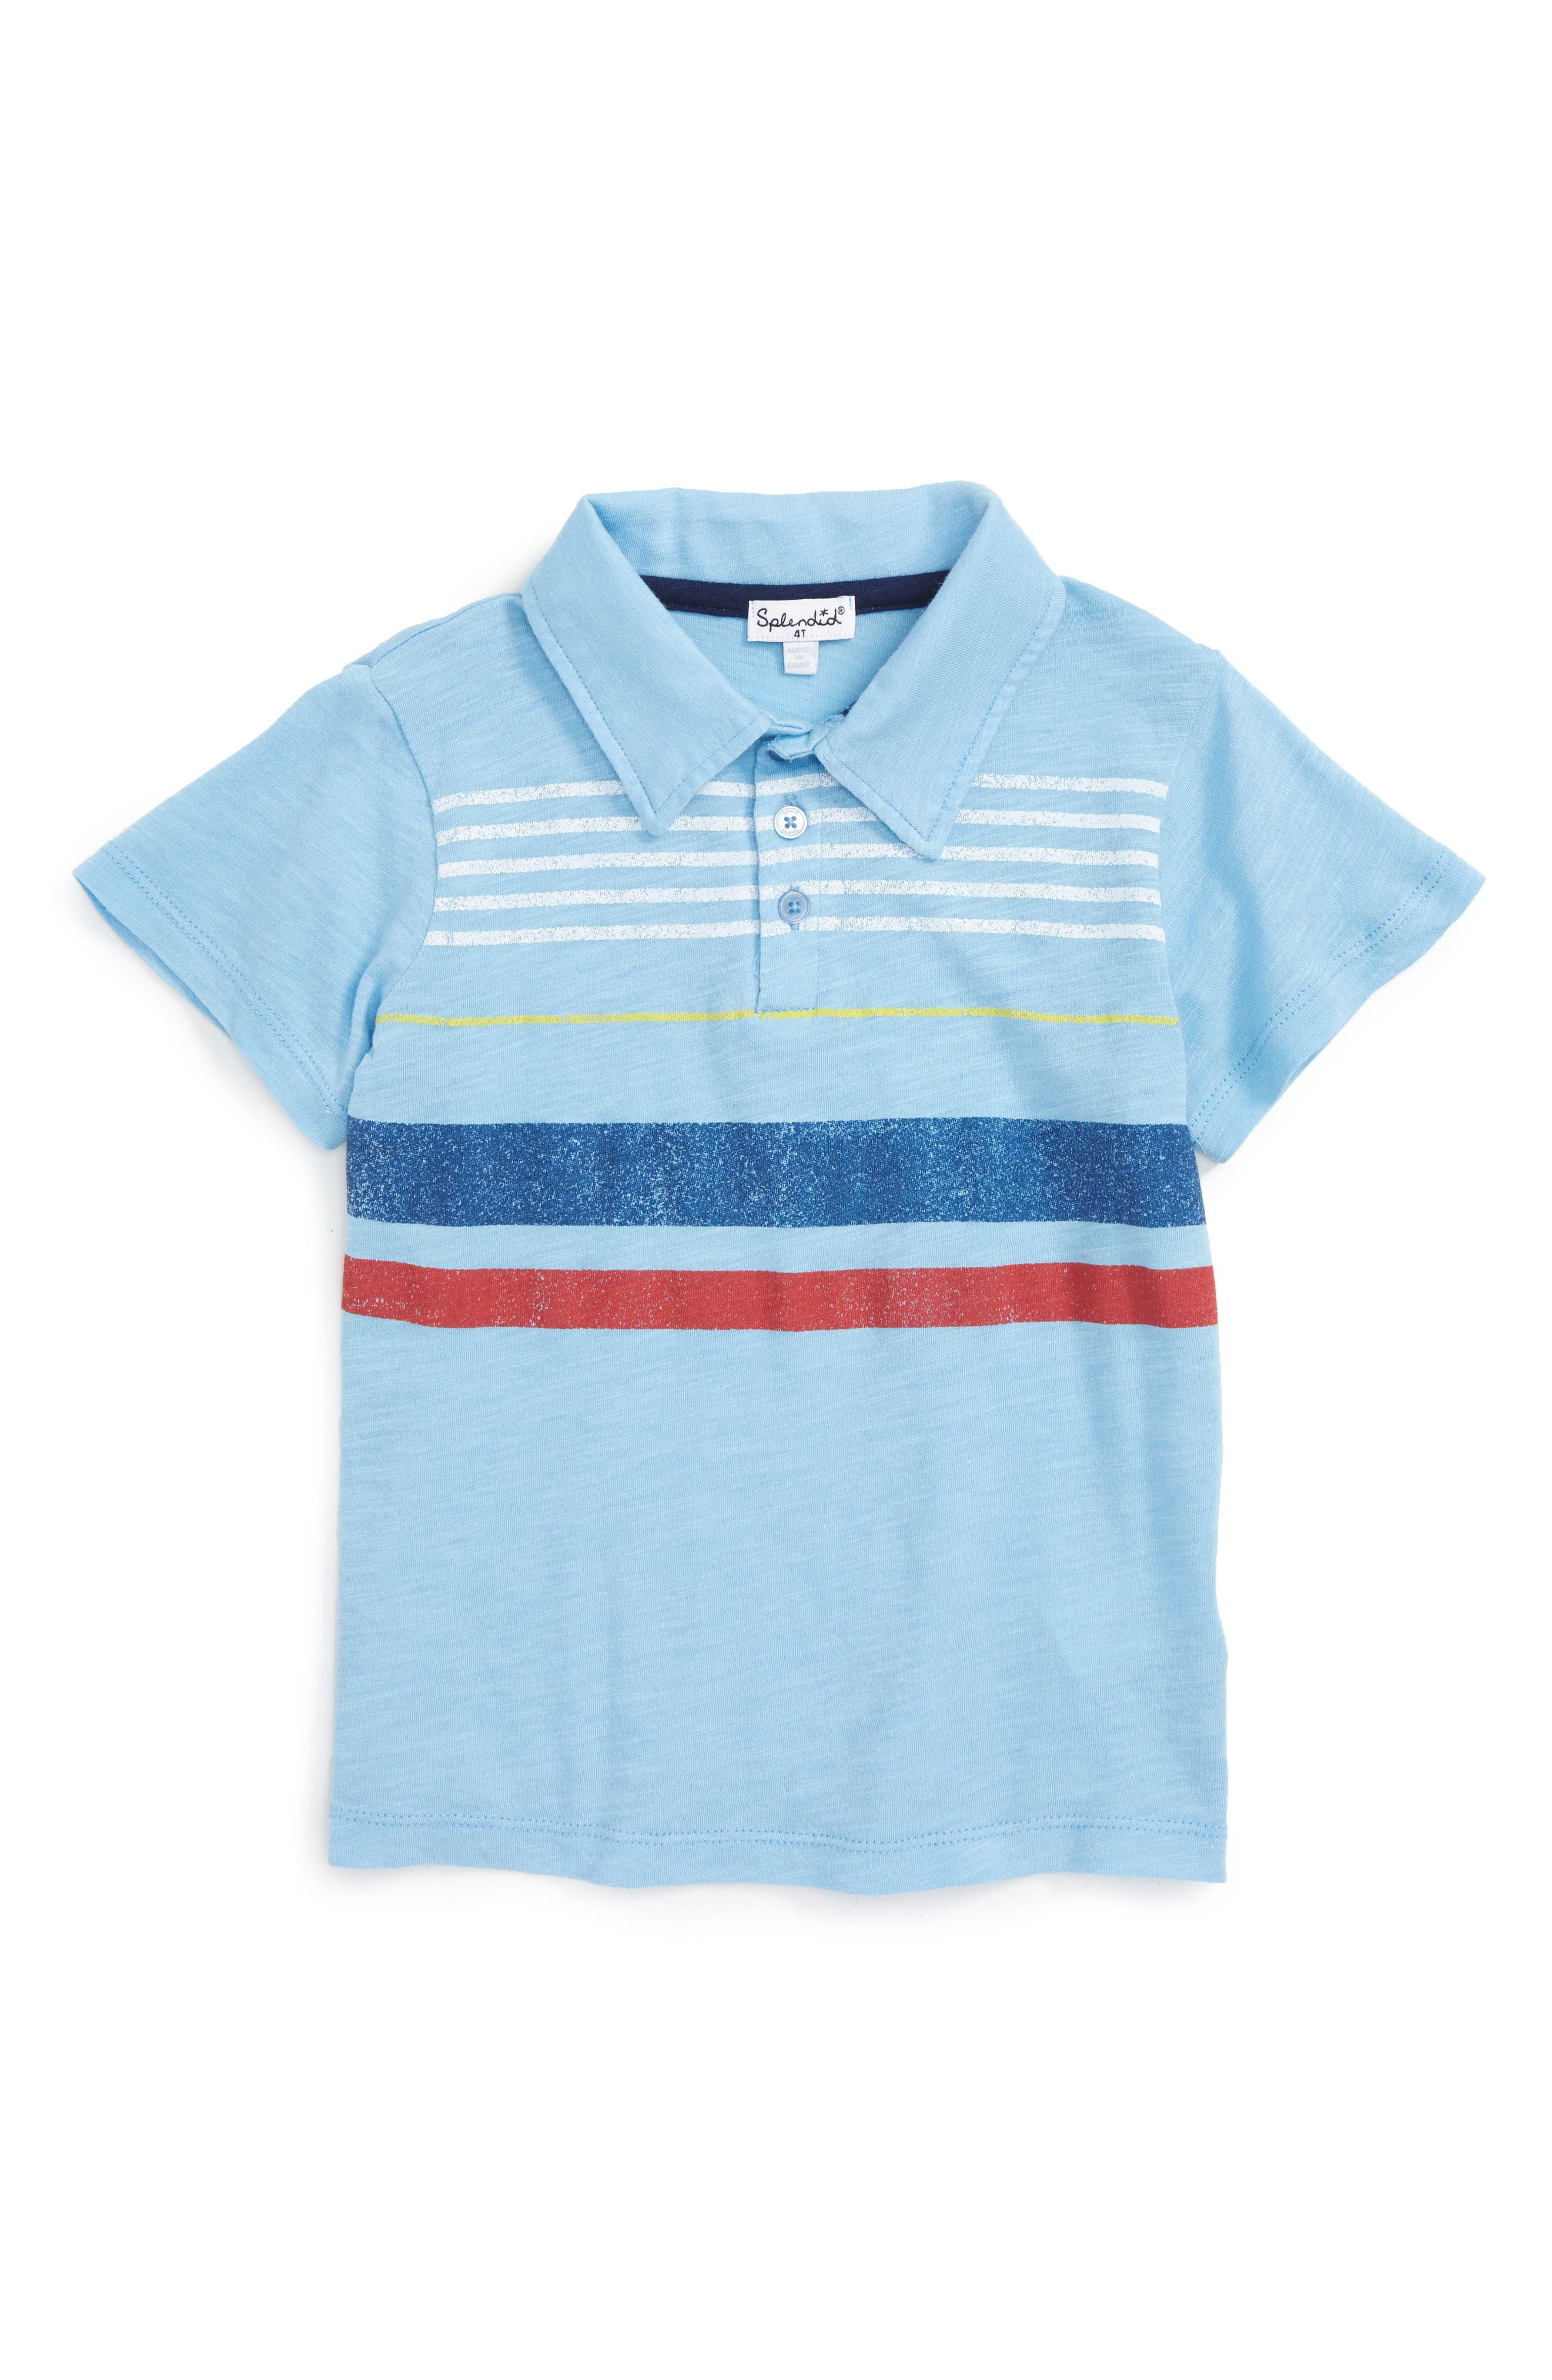 Splendid Stripe Polo (Toddler Boys & Little Boys)